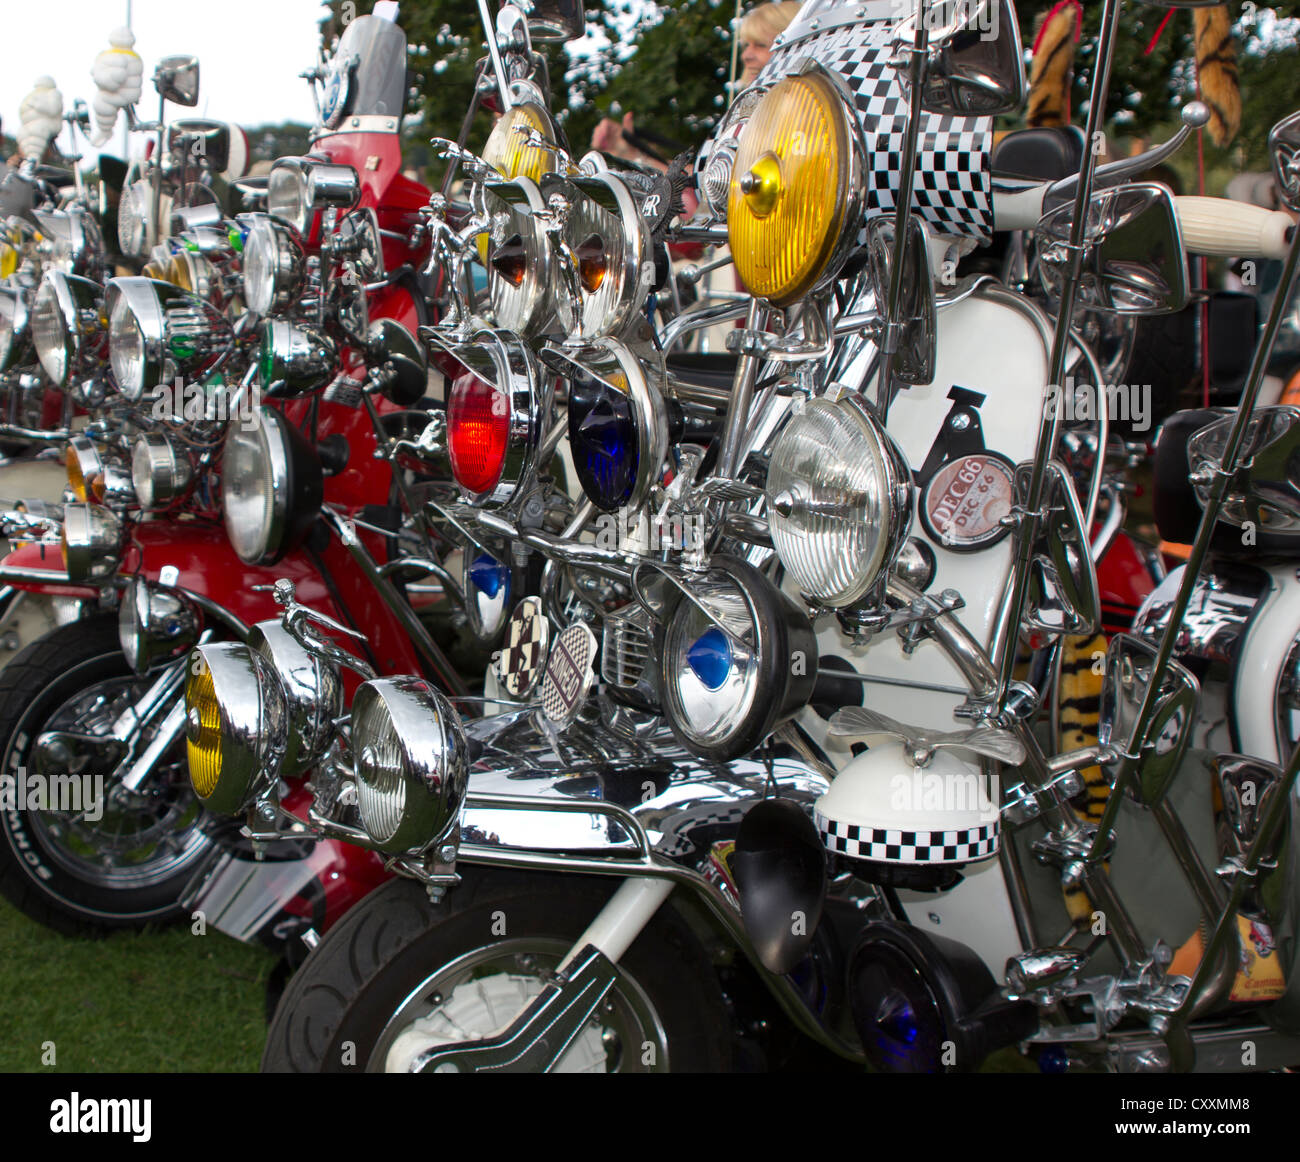 Mod Culture Lambretta Motor Scooters Headlamps & Mirrors - Stock Image